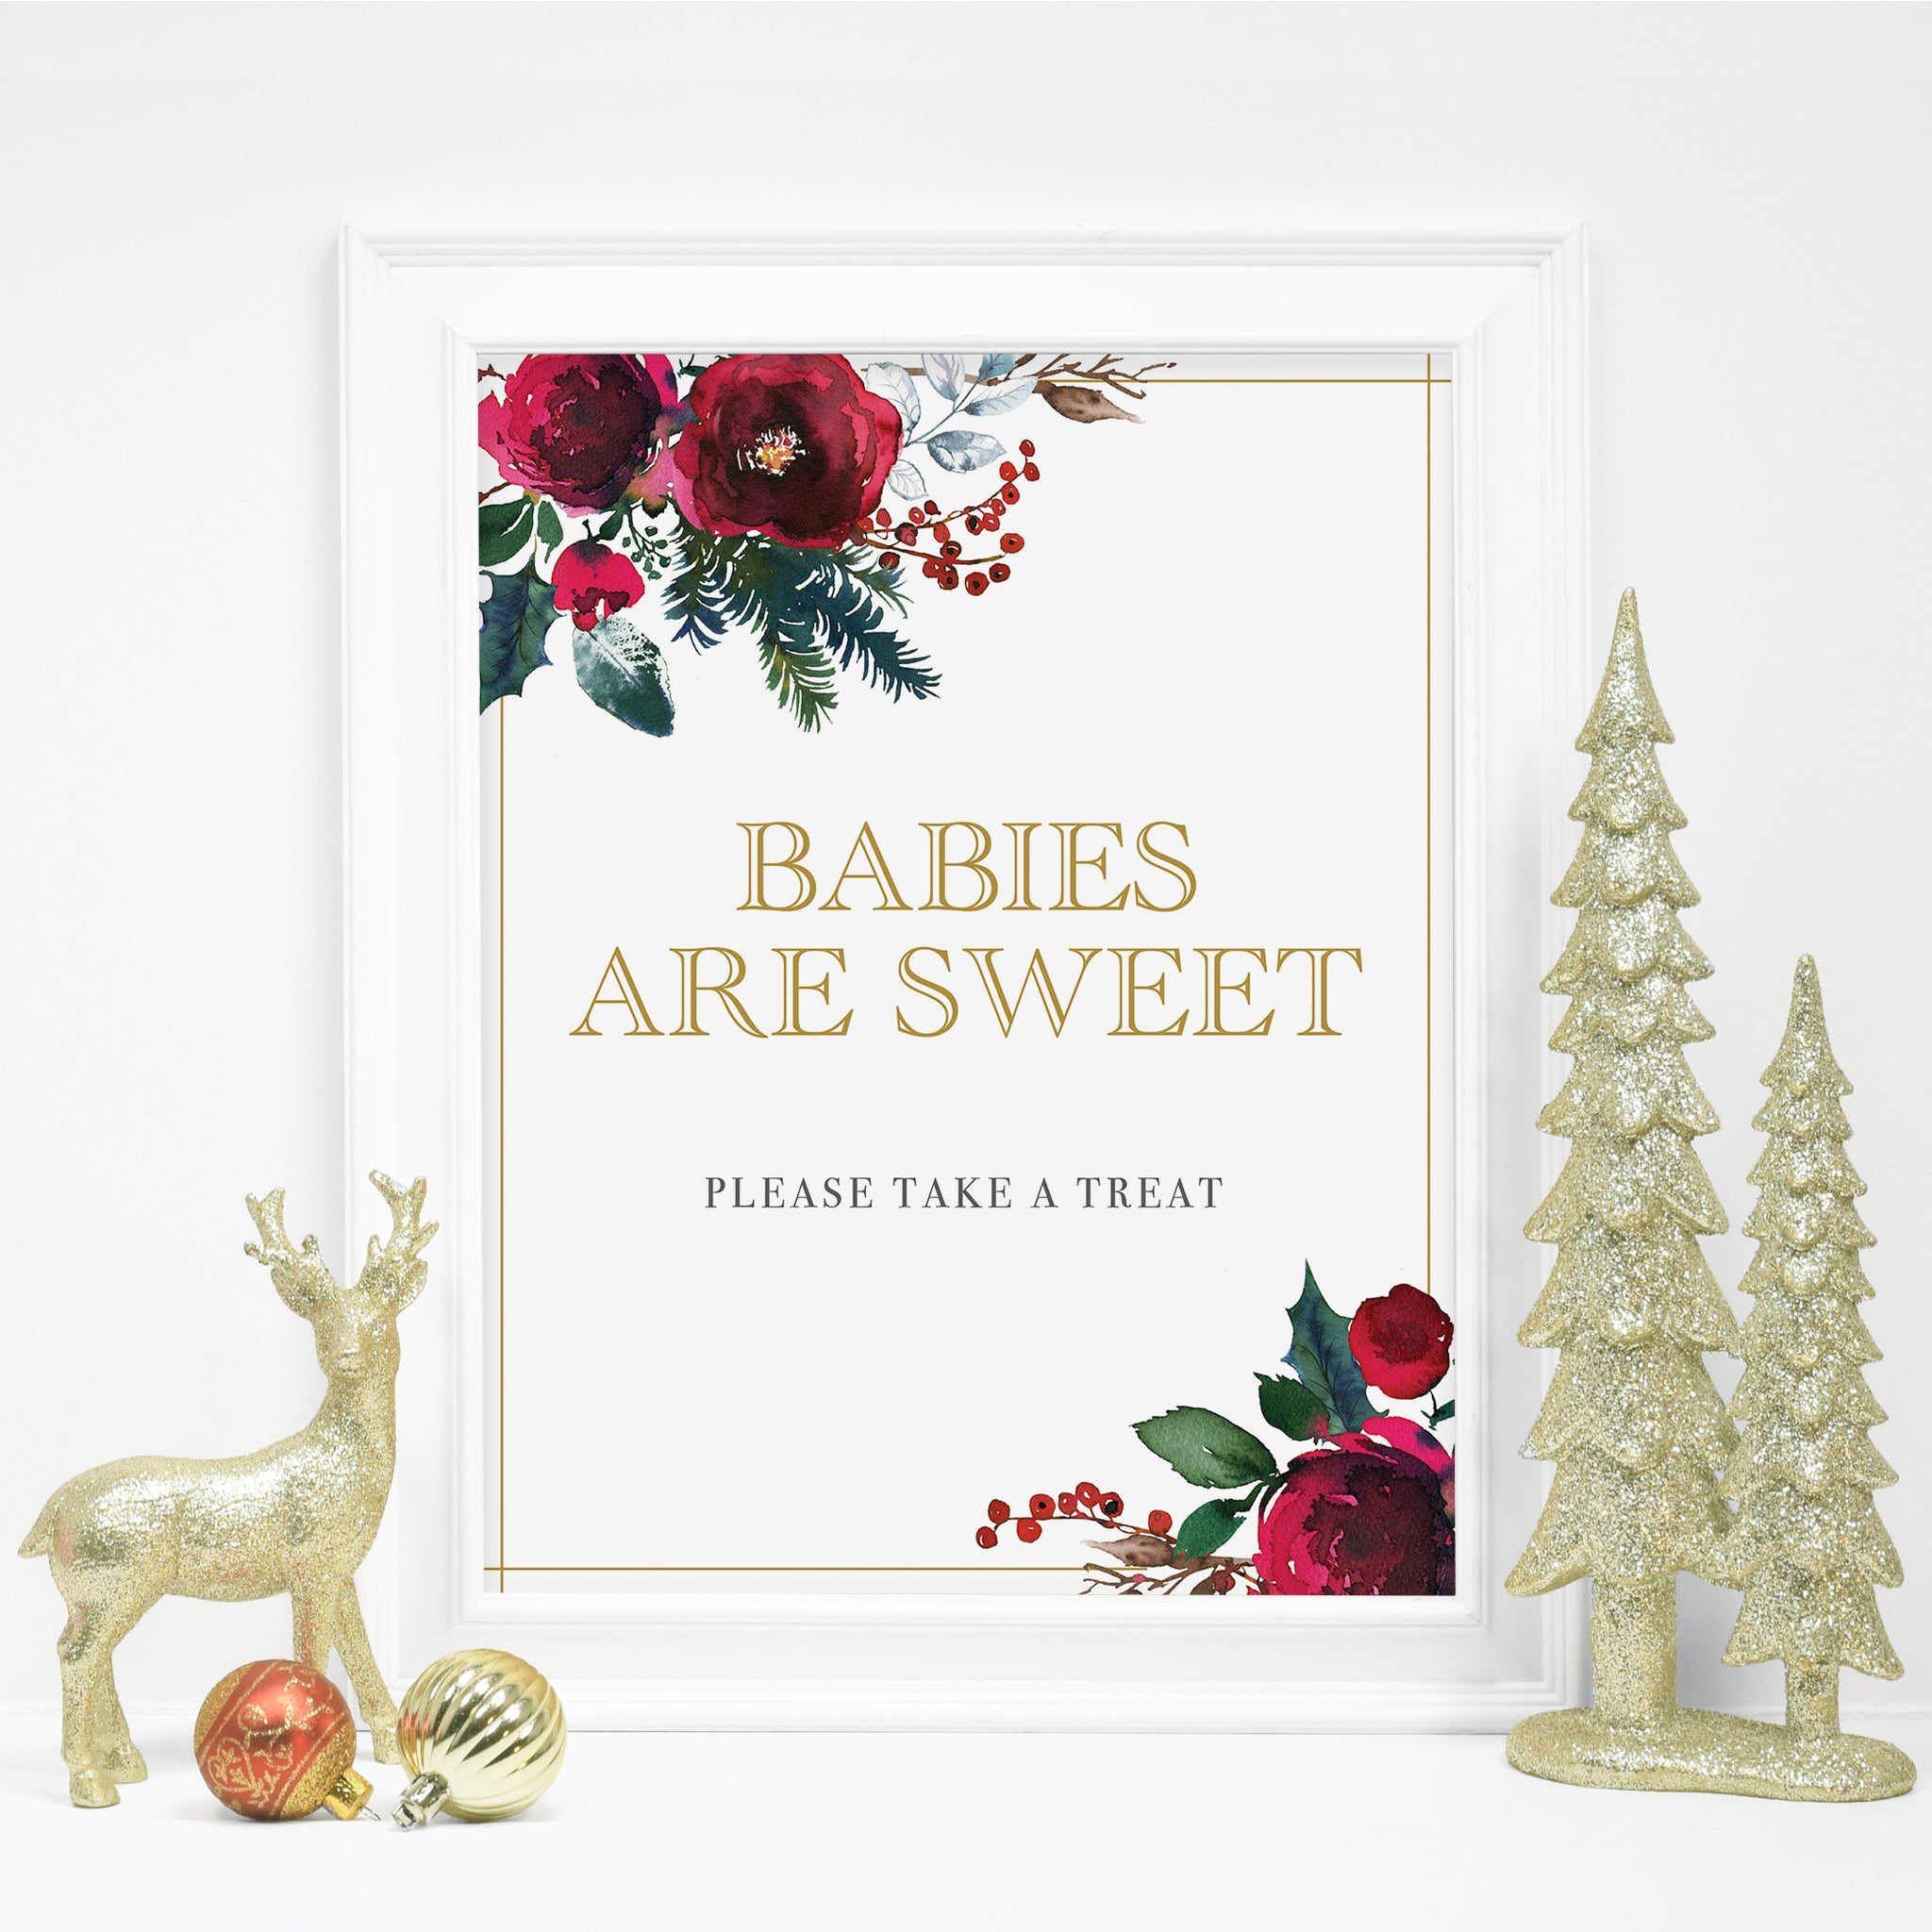 Christmas Baby Shower Treat Sign Printable, Babies Are Sweet Dessert Table Sign, Winter Baby Shower Decorations, INSTANT DOWNLOAD - CG100 - @PlumPolkaDot